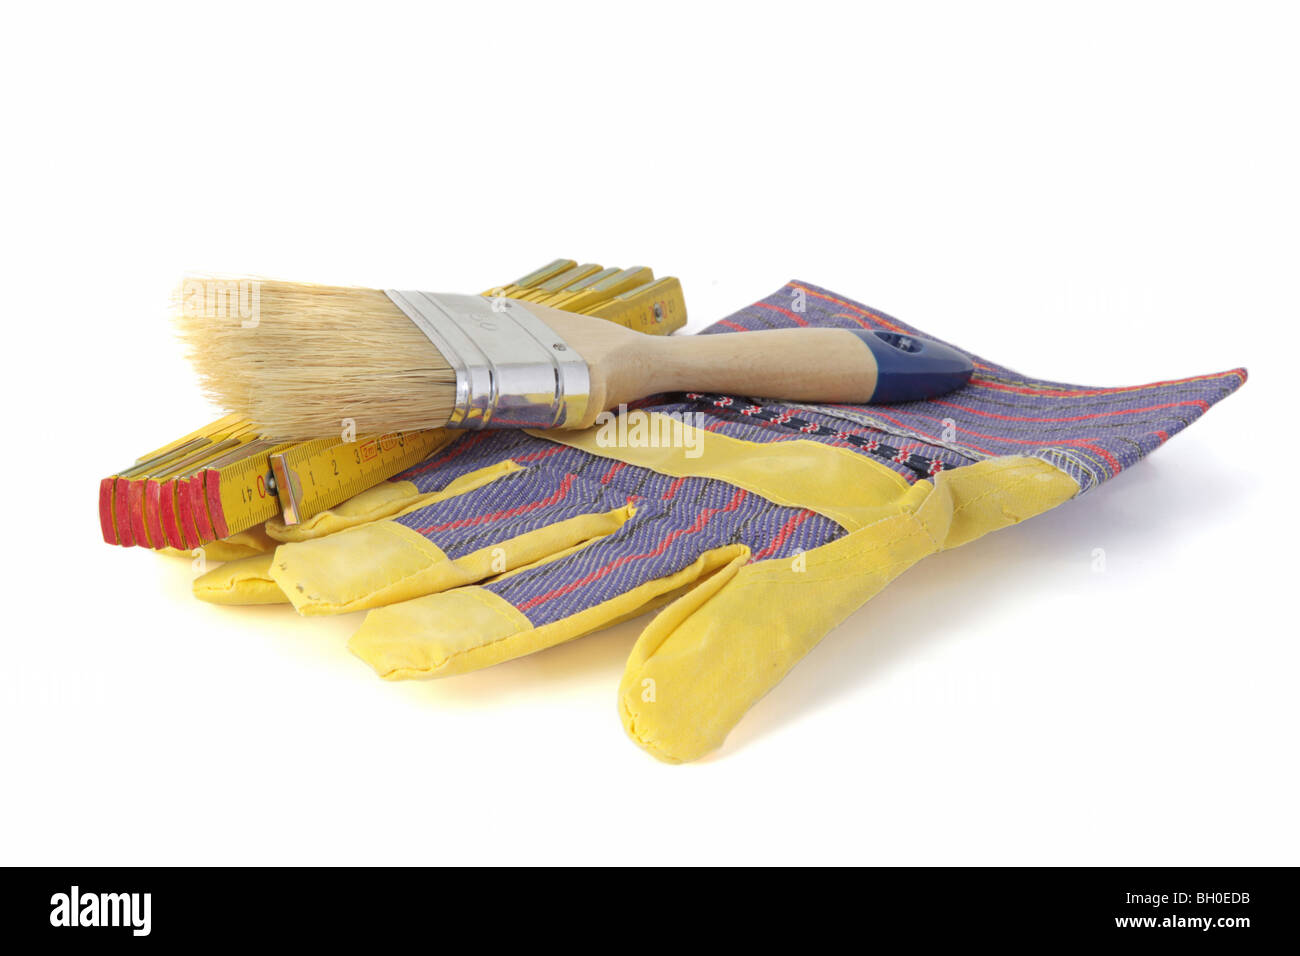 Typical tools of a house painter. All isolated on white background. - Stock Image